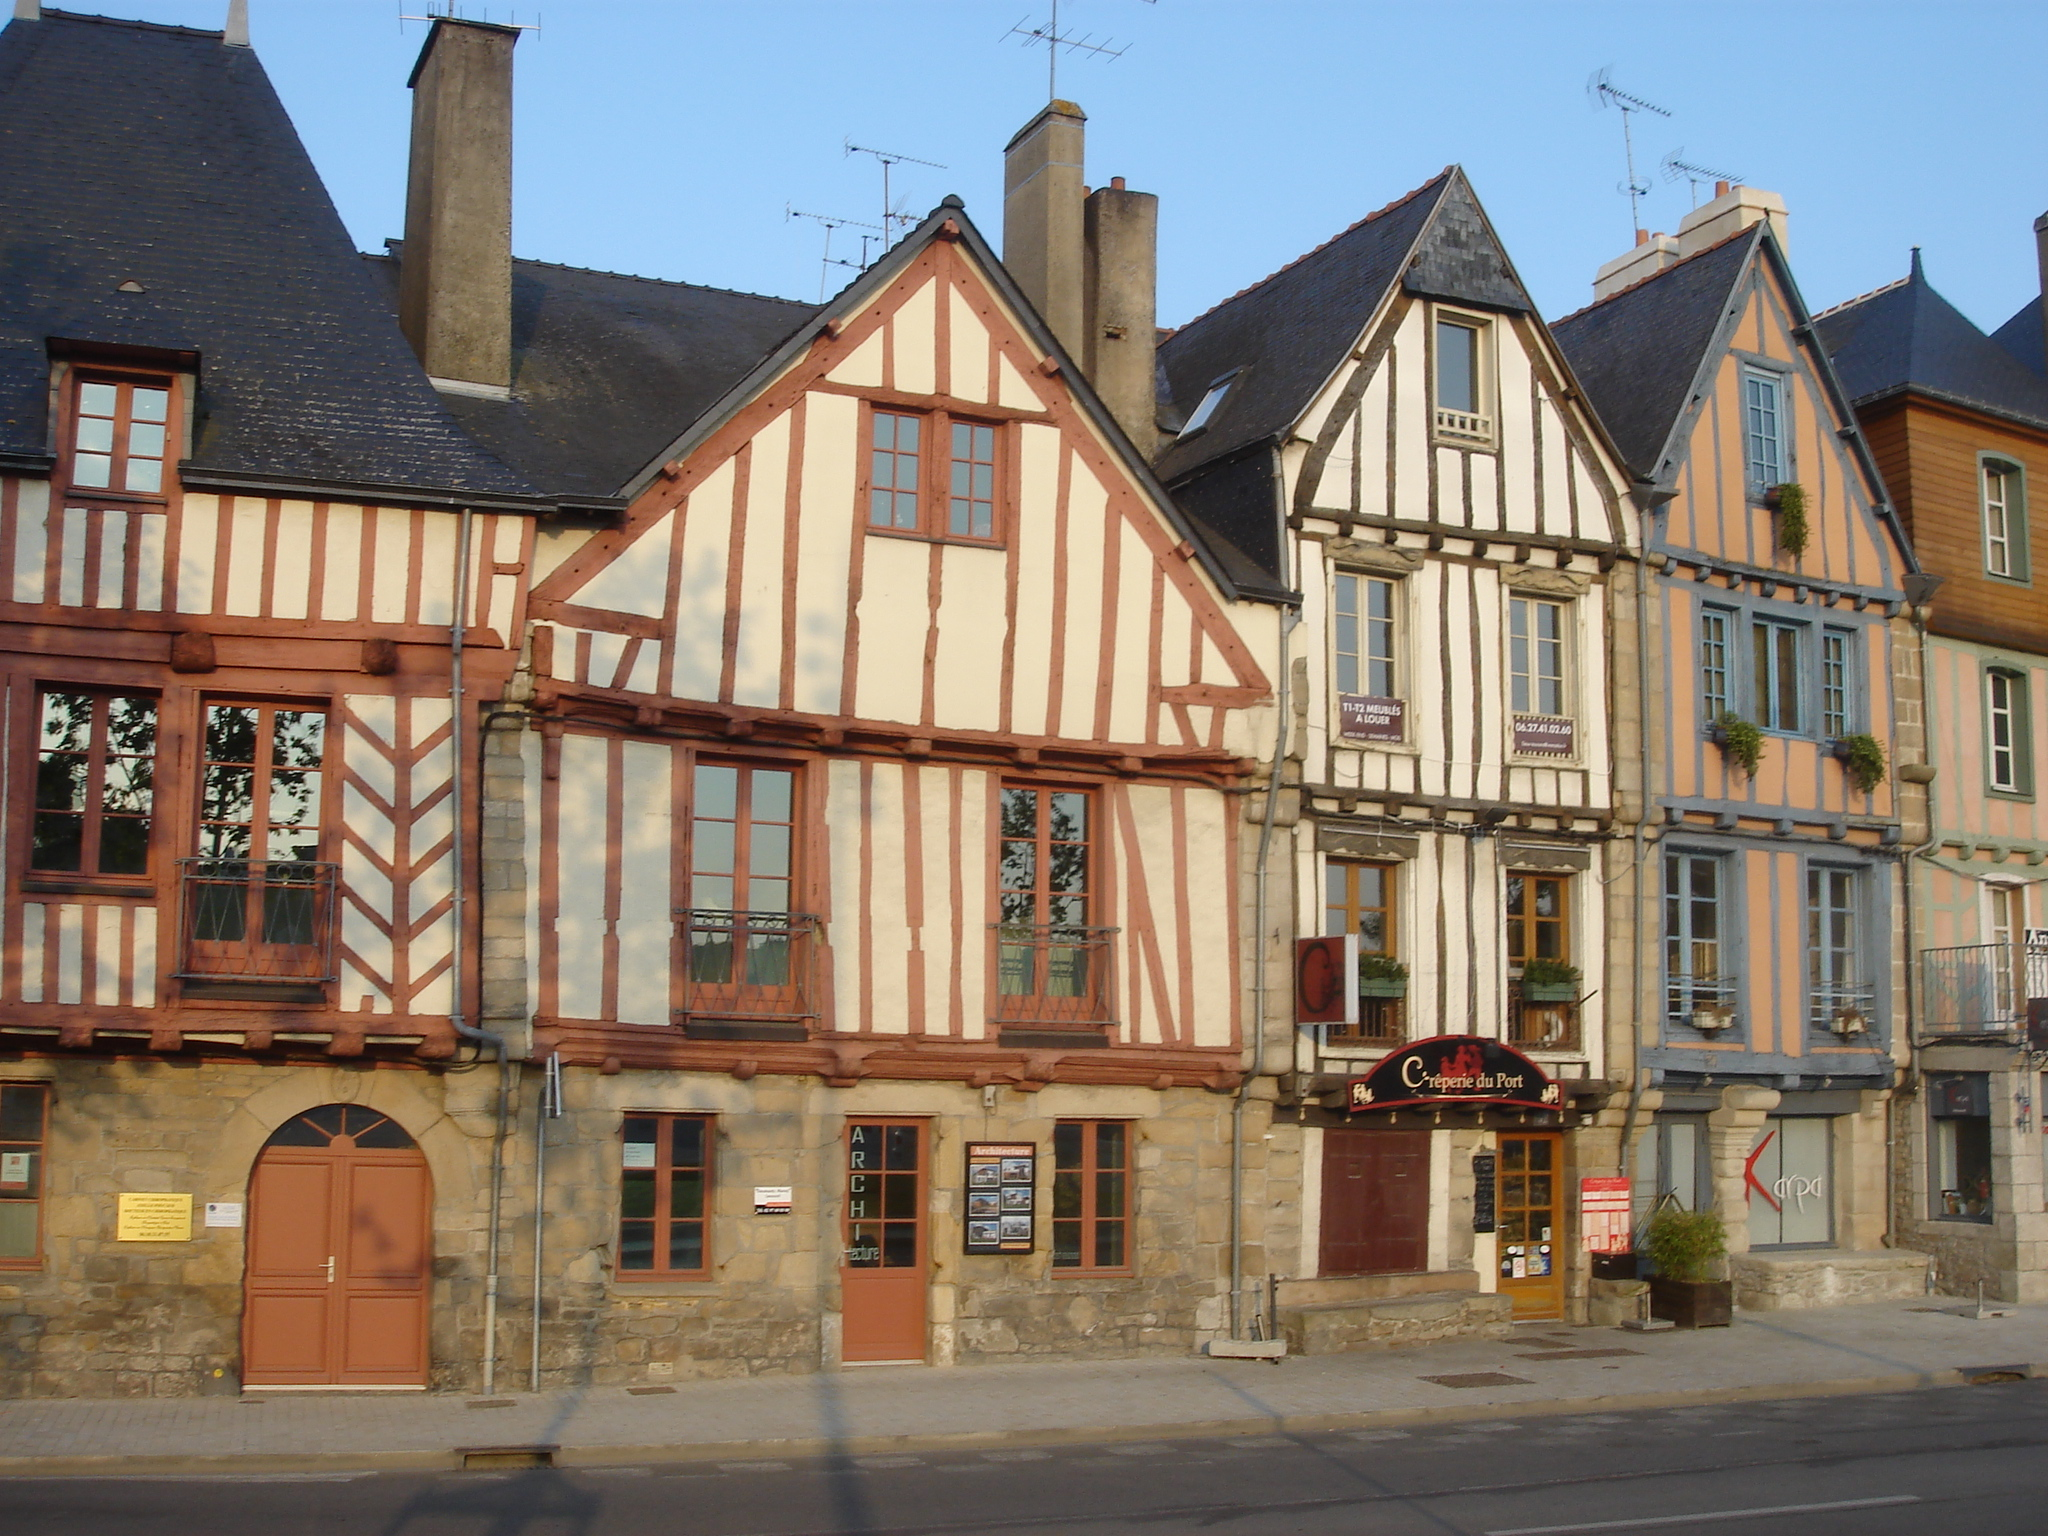 file maisons vannes rue du port vannes louis wikimedia commons. Black Bedroom Furniture Sets. Home Design Ideas